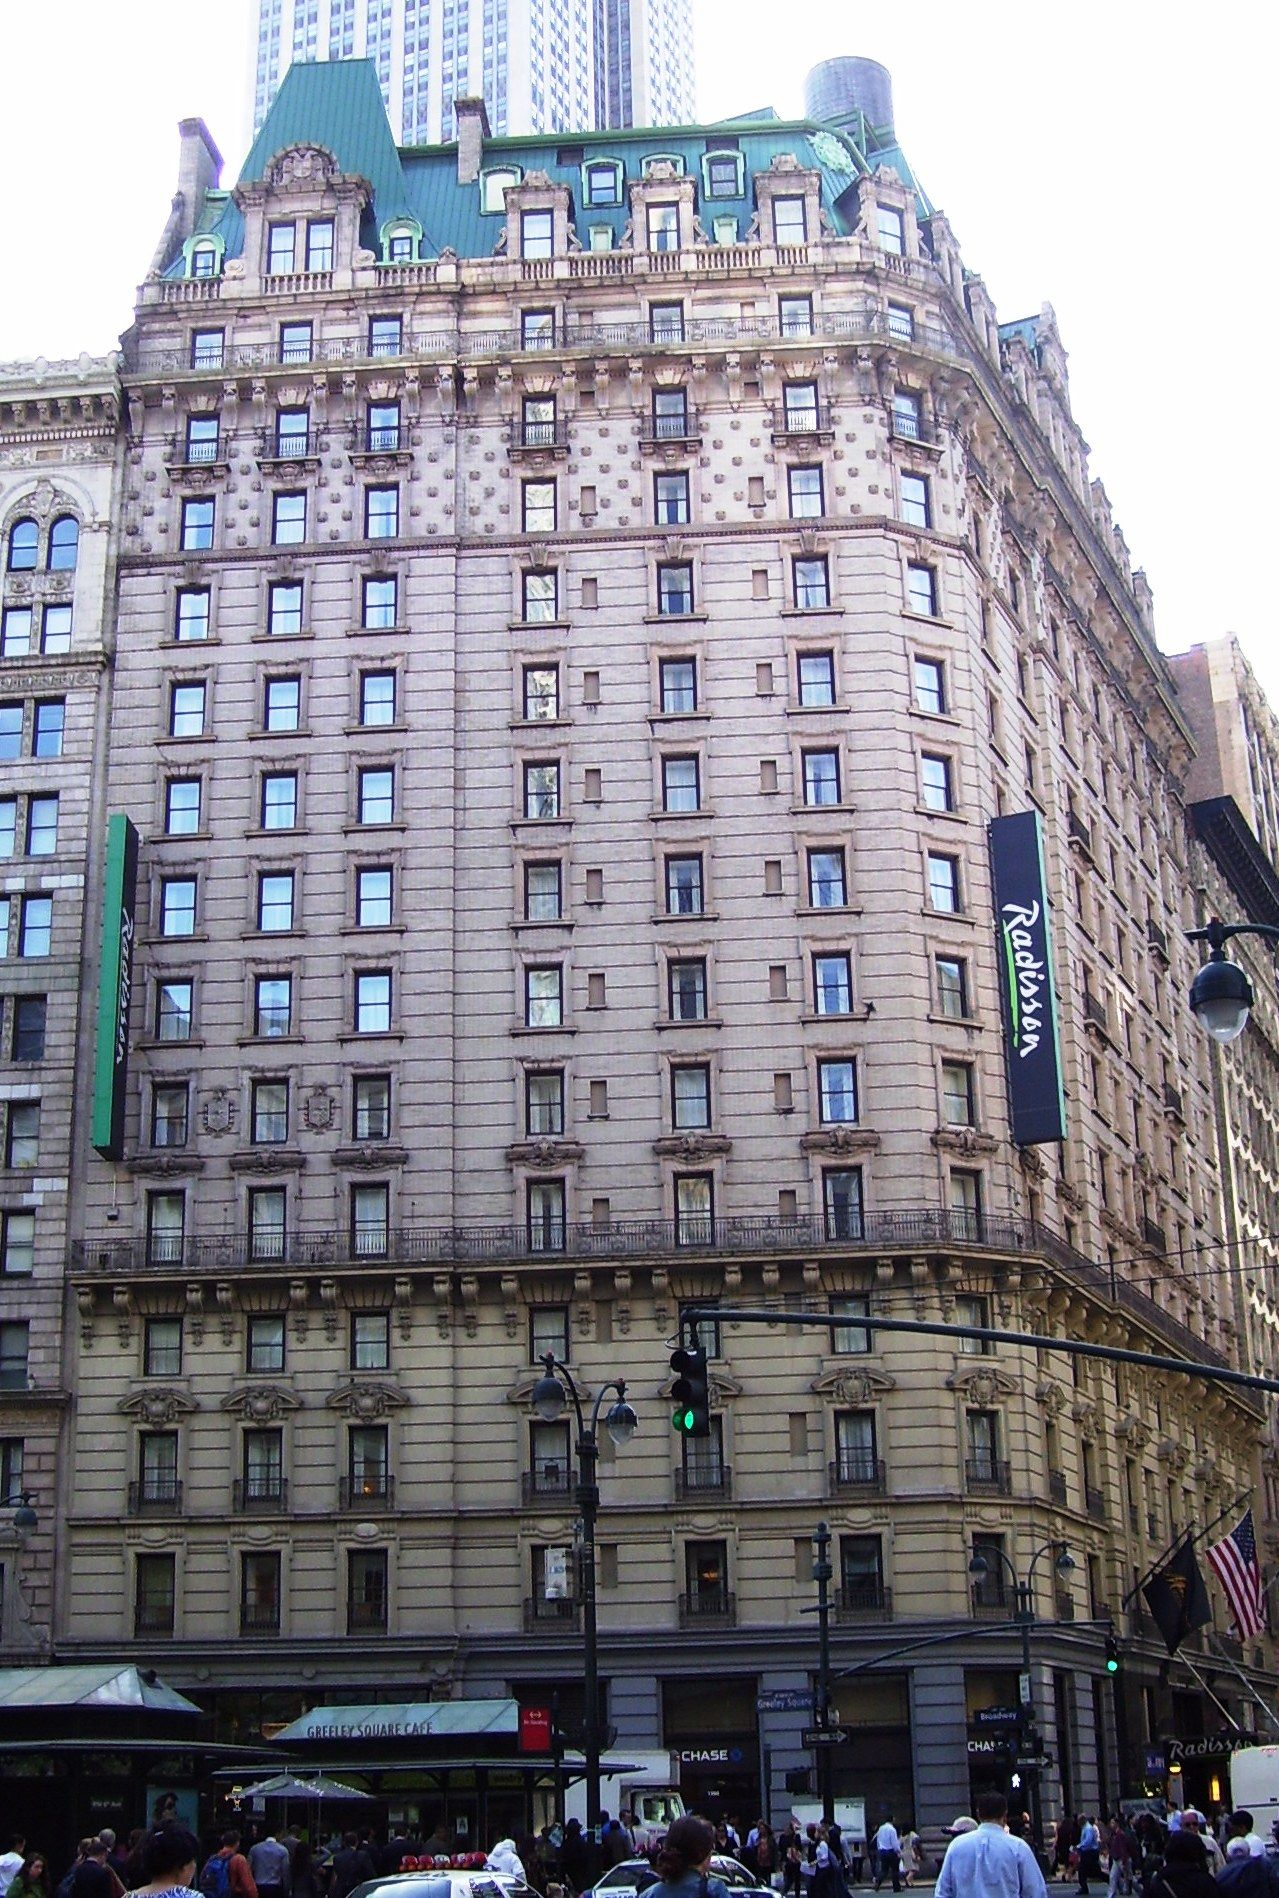 The Radisson Hotel At 53 West 32nd Street Also Known As 1260 1266